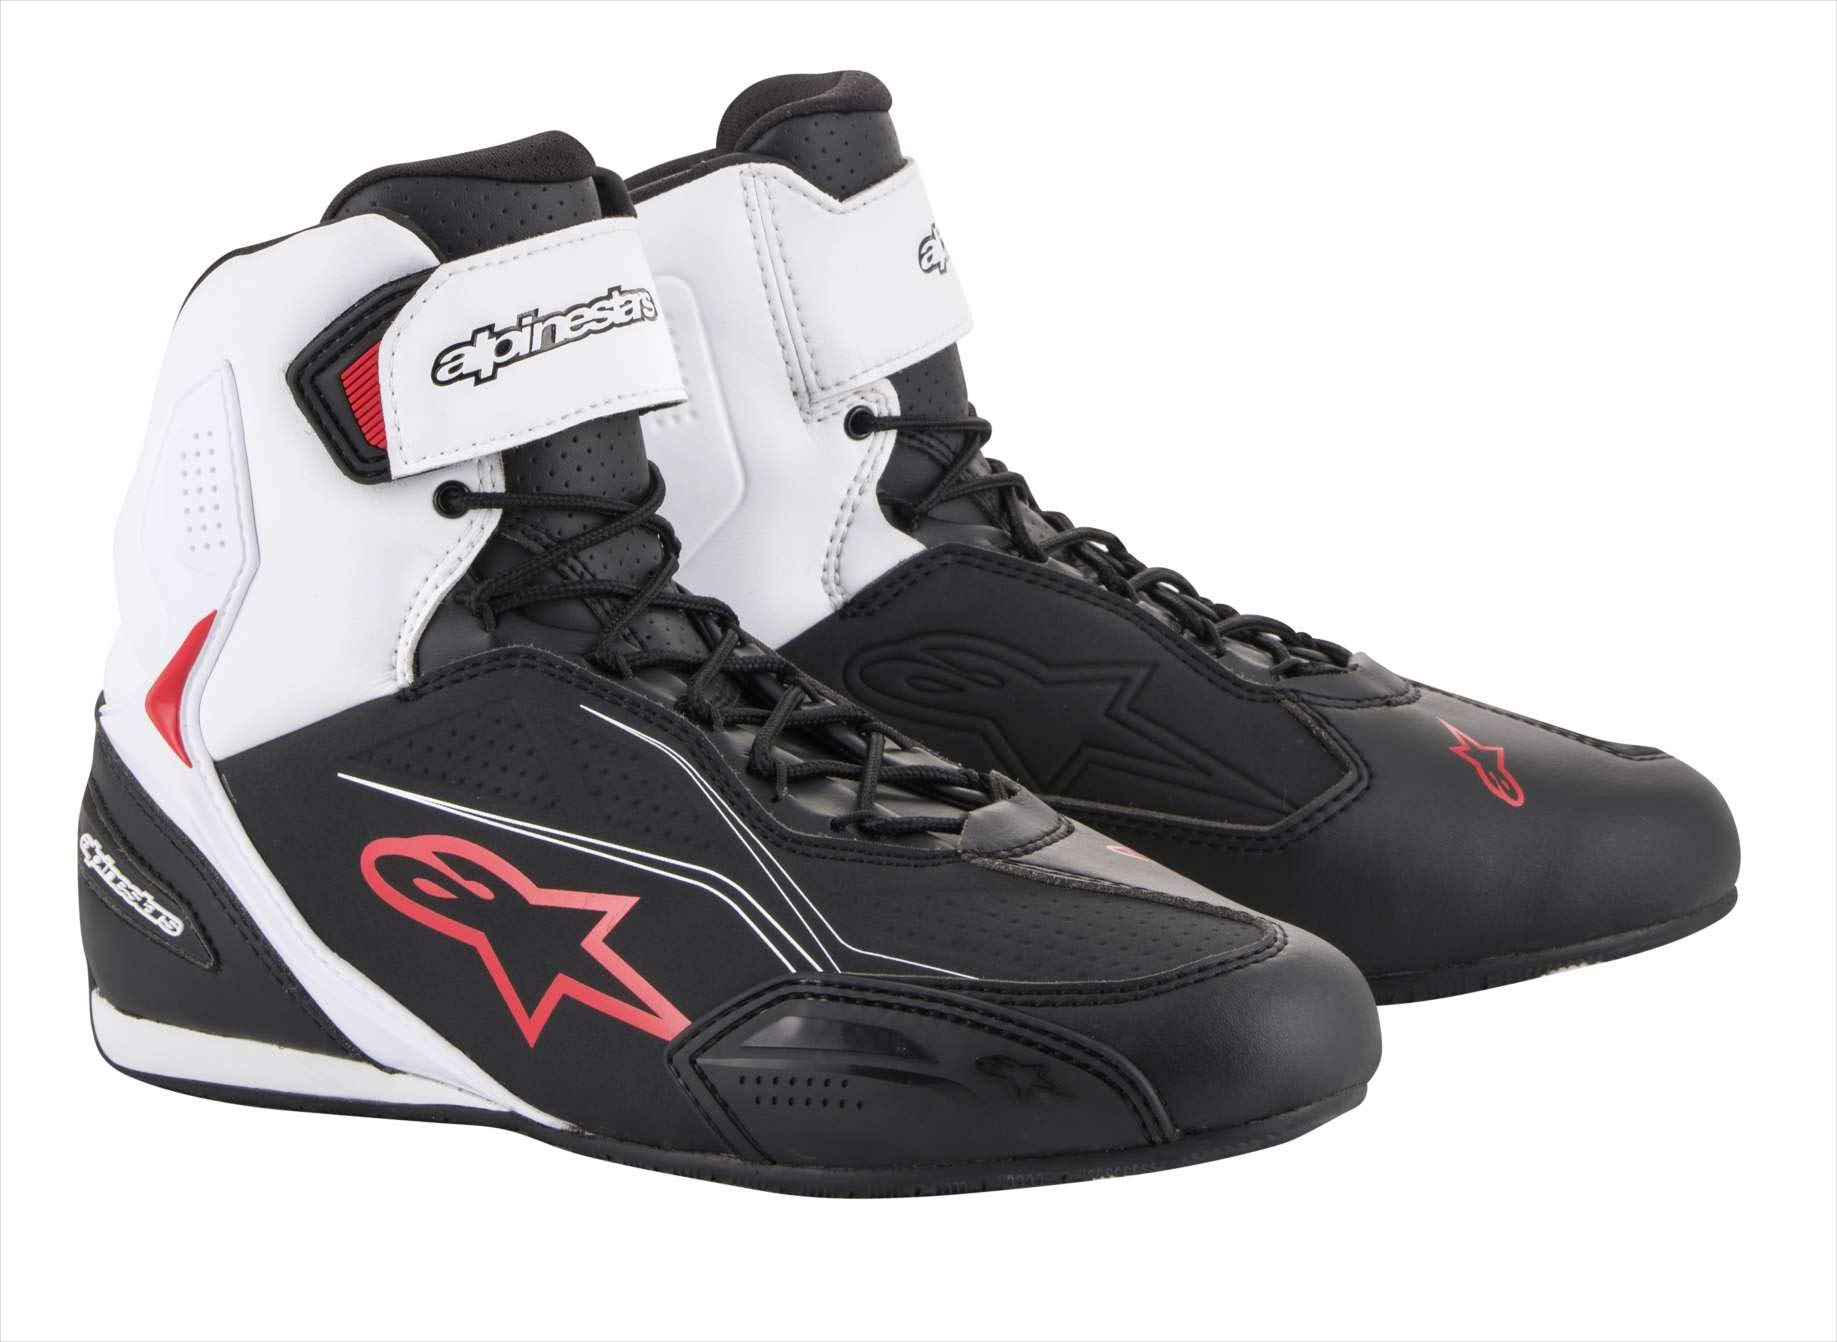 Alpinestars Faster-3 Shoes (10.5, Black/White/Red) by Alpinestars